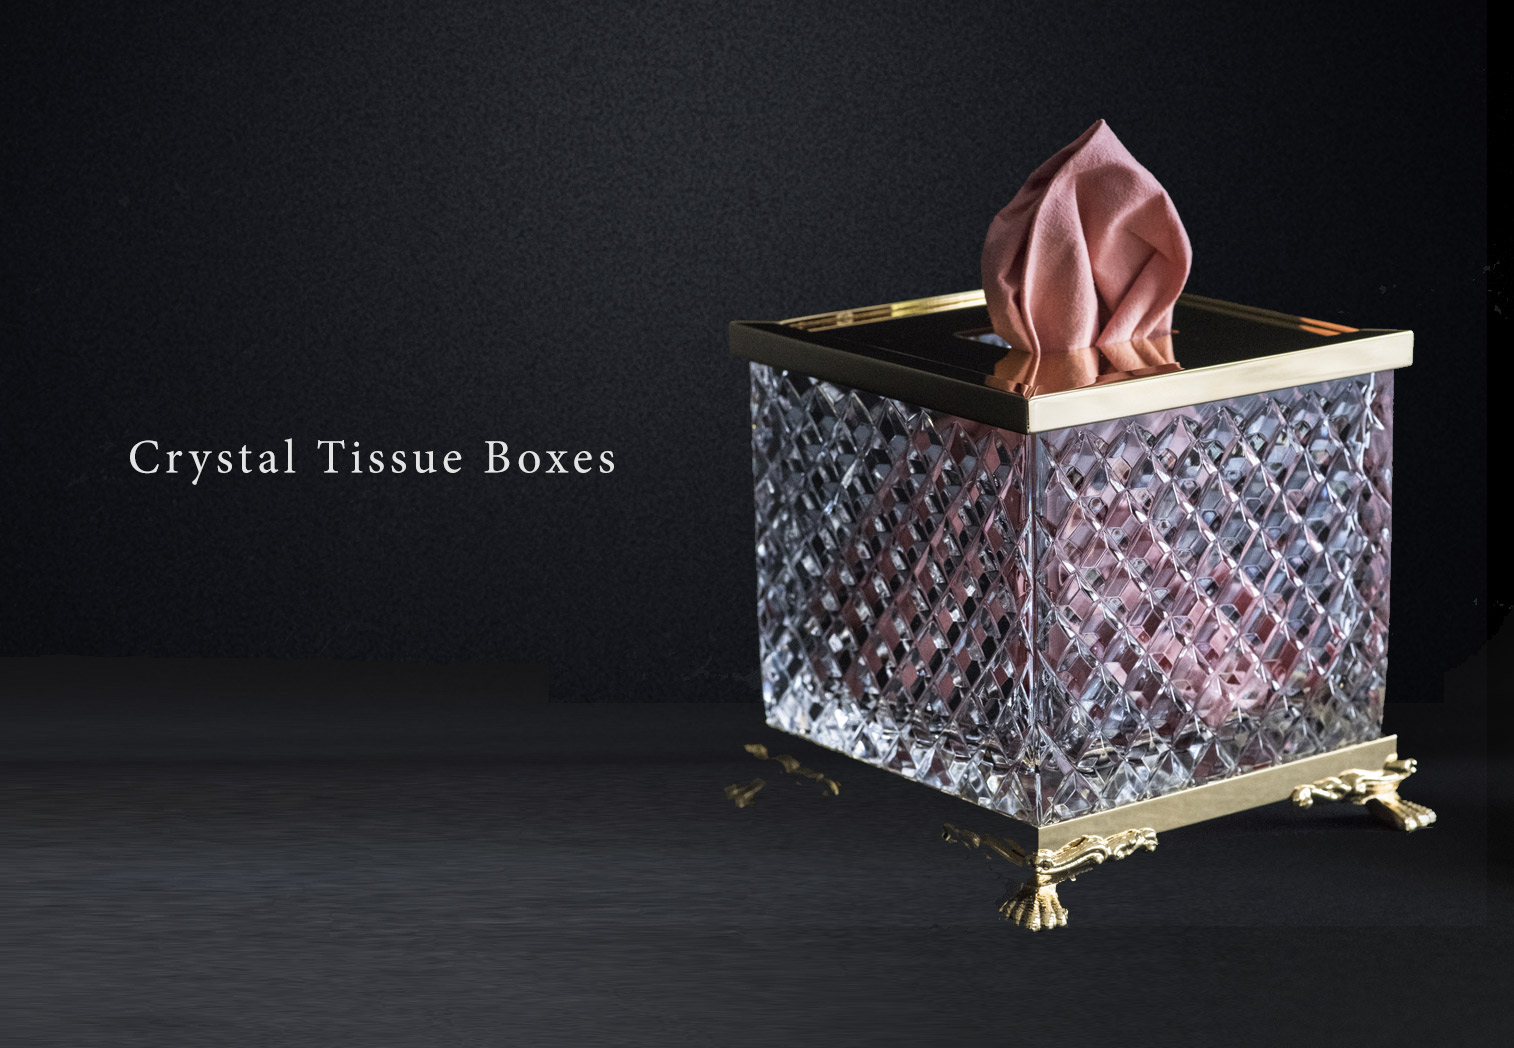 Crystal-Tissue-Boxes.jpg